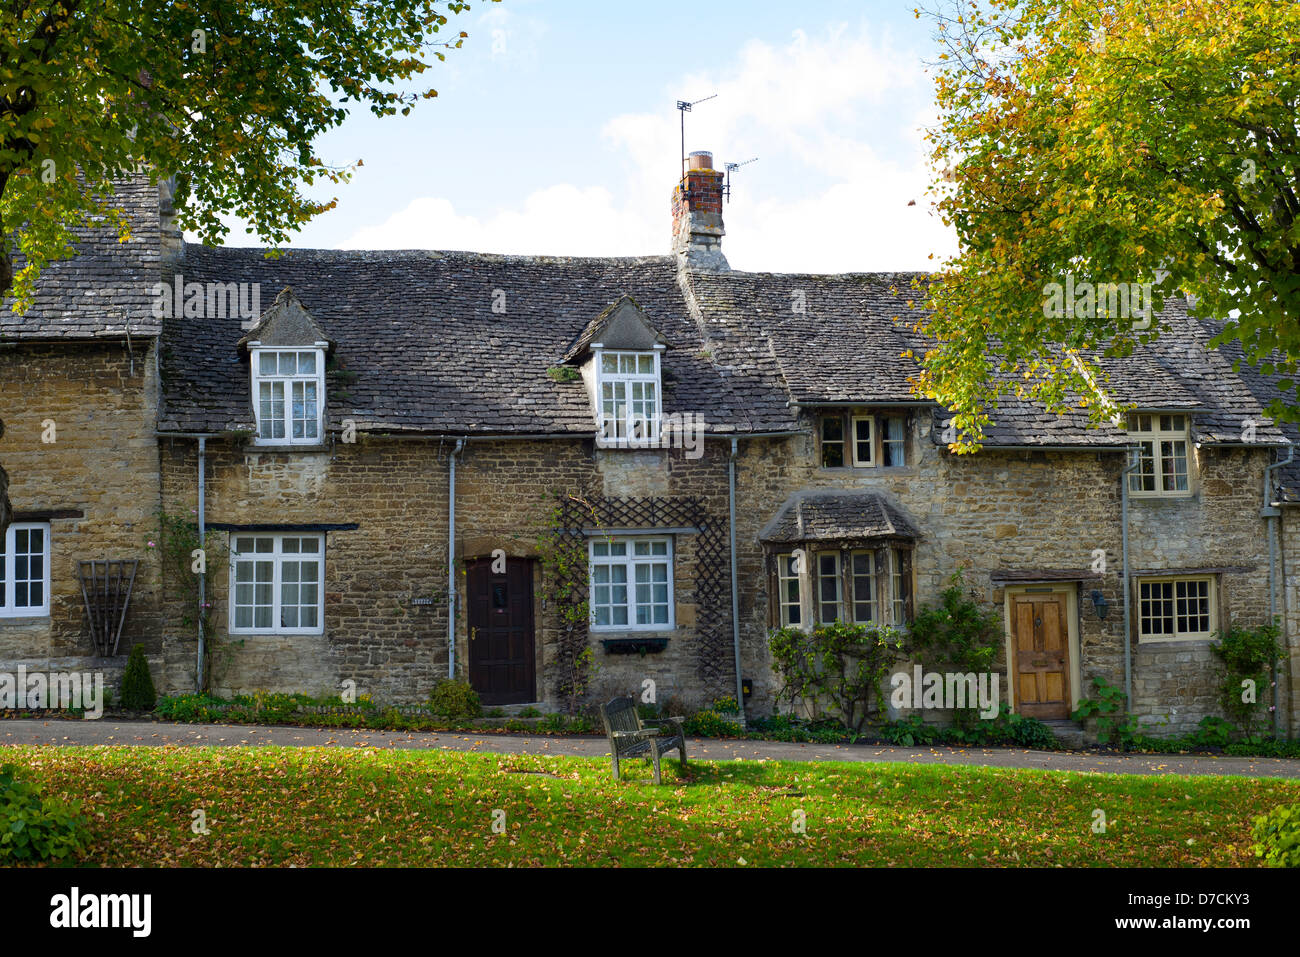 View of Burford in the Cotswolds, showing the cottages at the top end of the high street, Oxfordshire, England - Stock Image